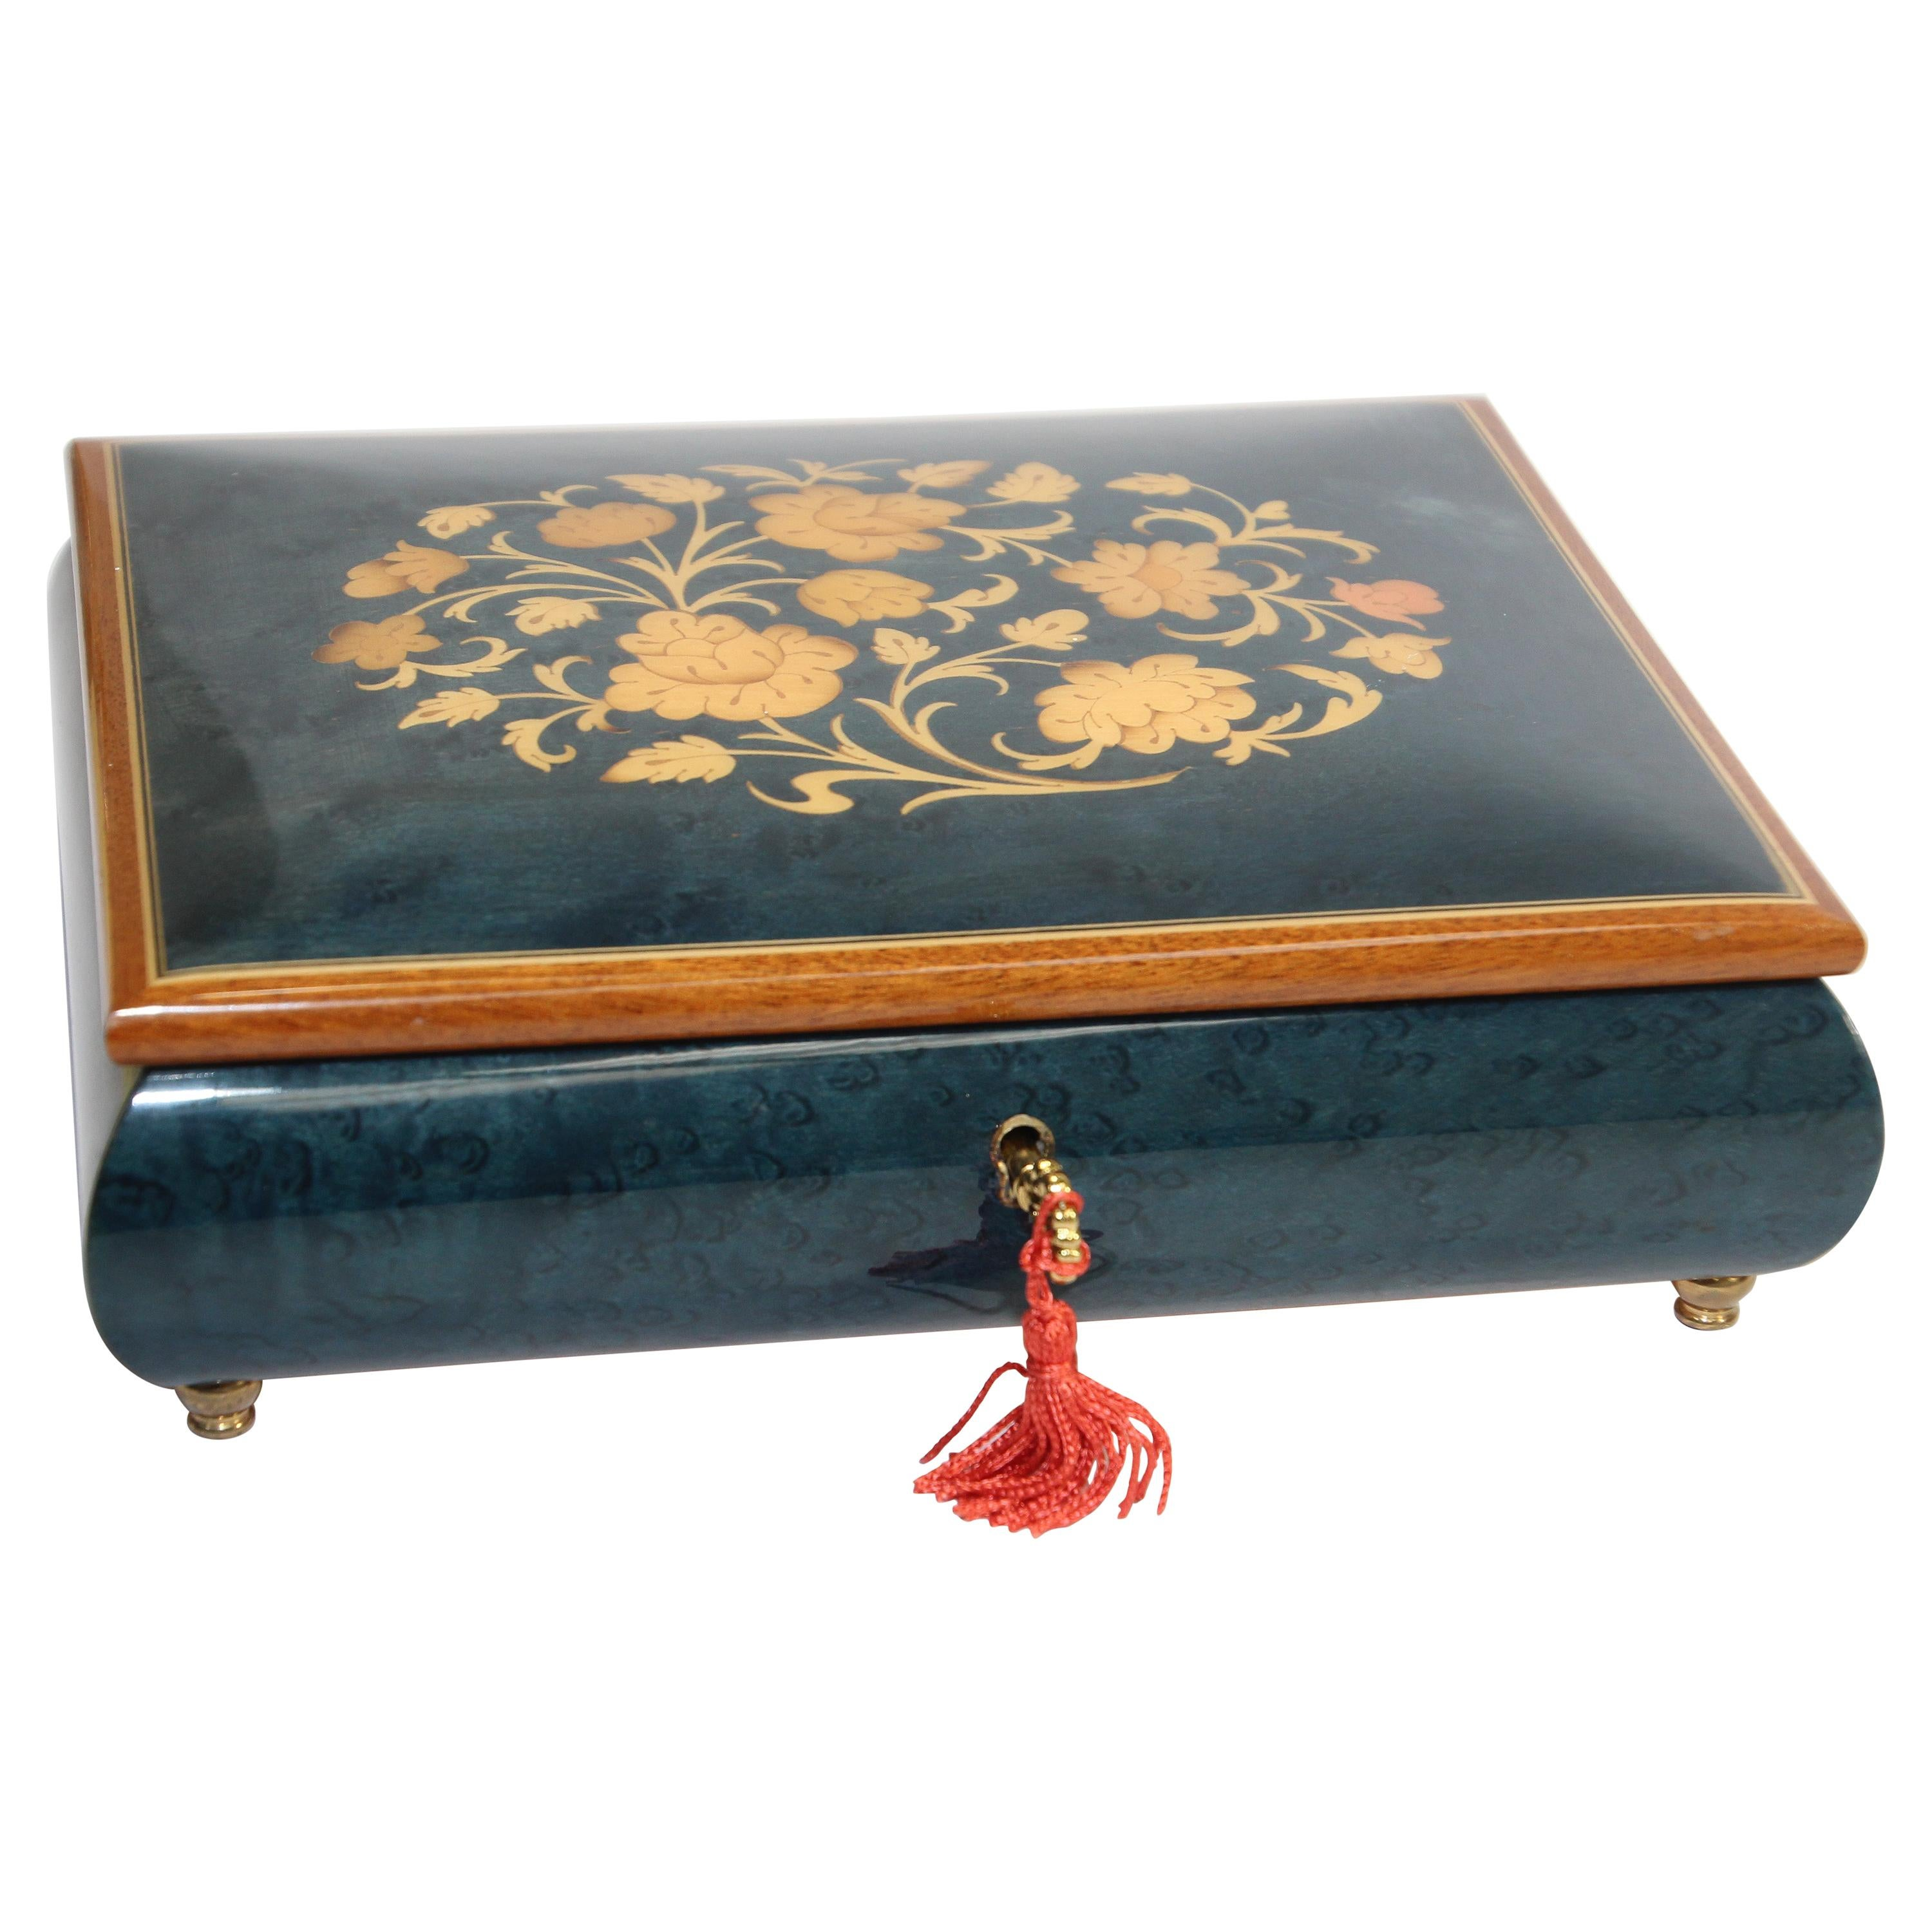 Cobalt Blue Jewelry Music Box, Made in Italy